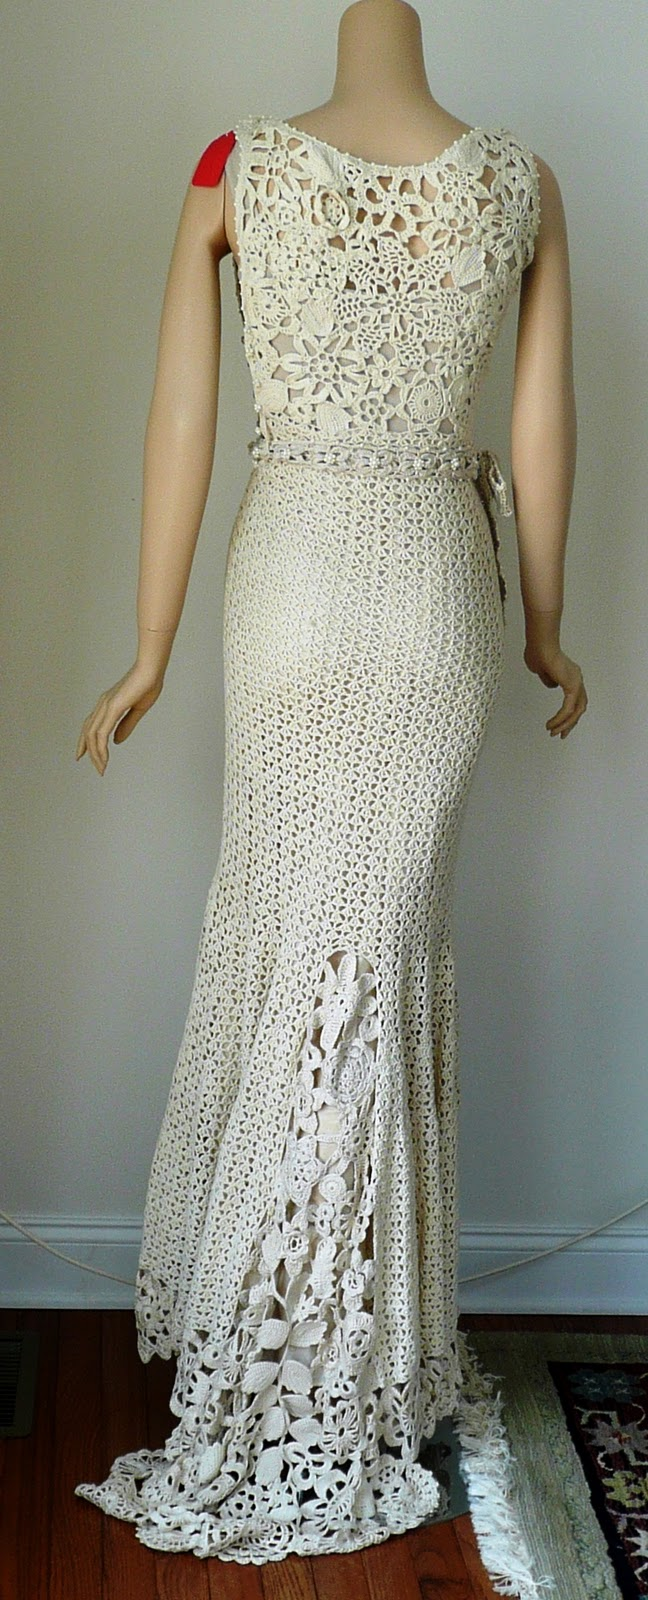 Crochet guild of america 2010 design competition results for Crochet wedding dress patterns